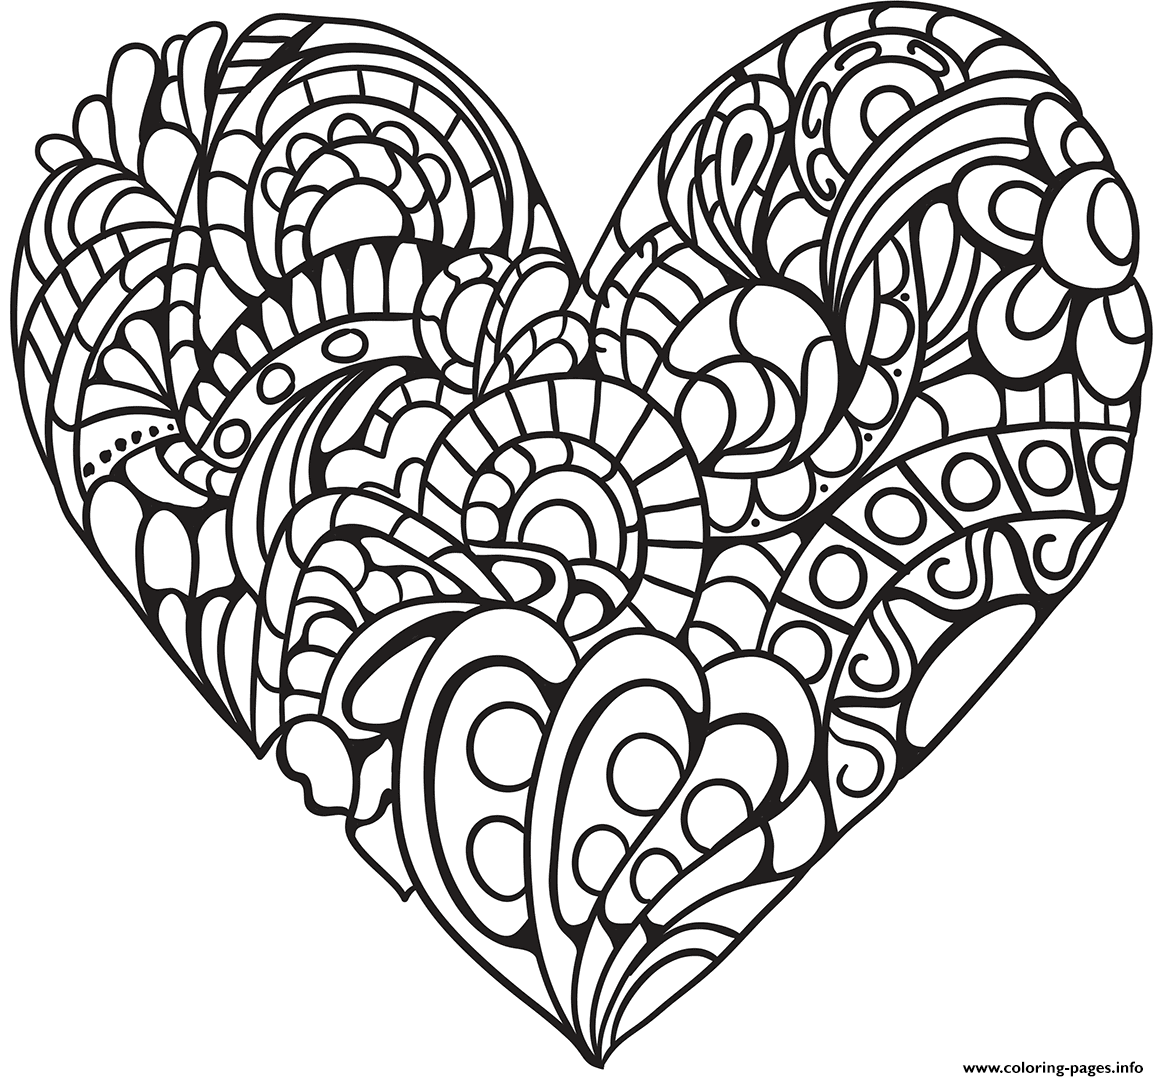 Zentangle Heart For Adult coloring pages